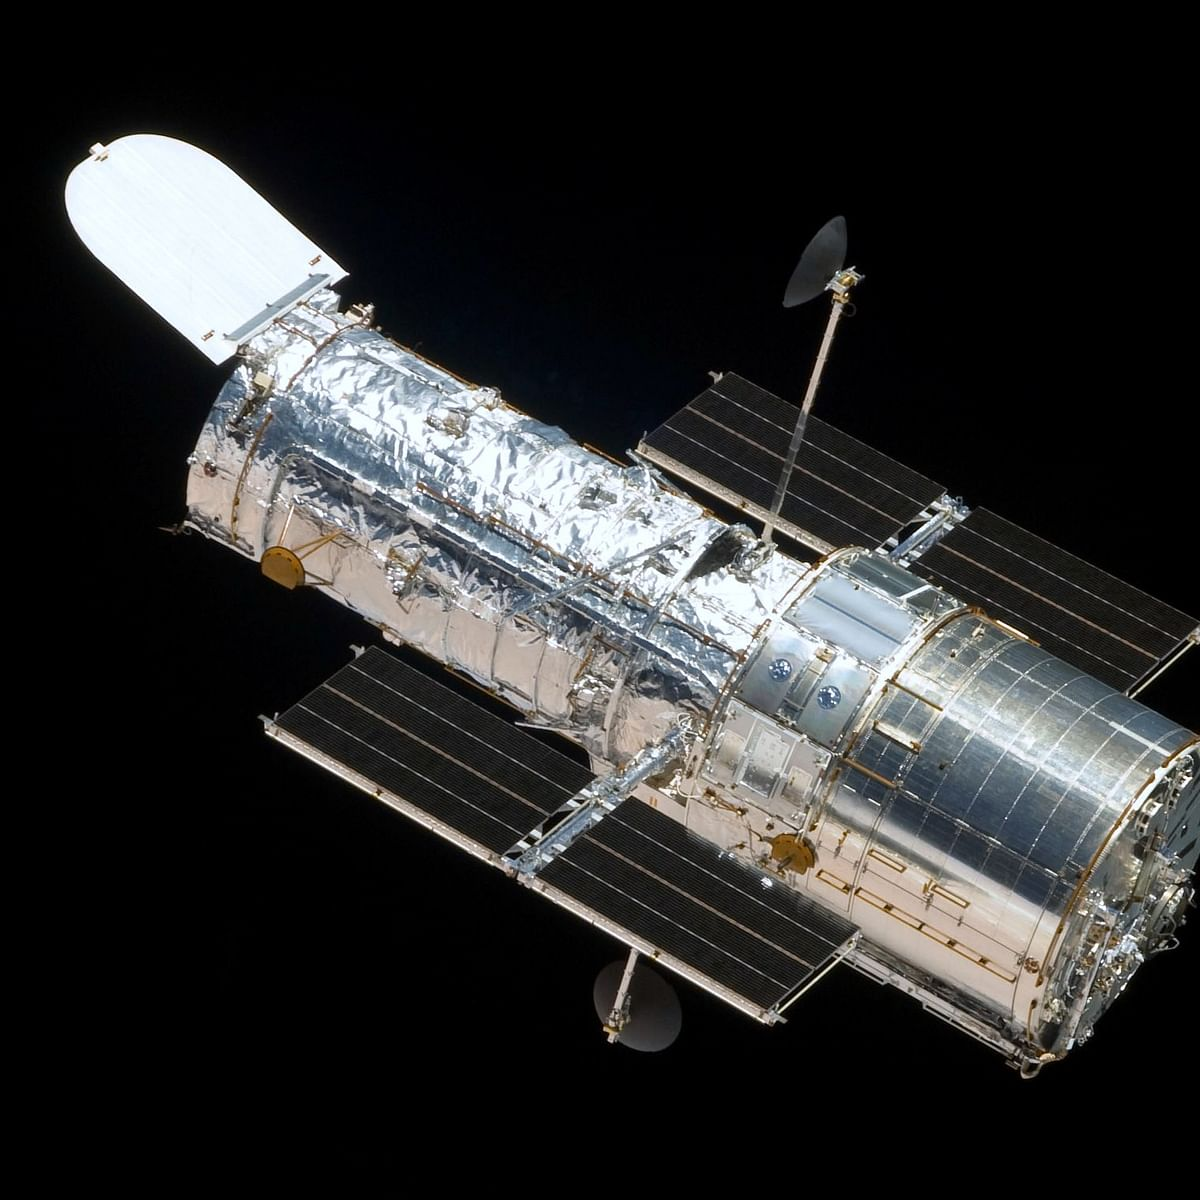 Hubble Space Telescope has yielded 1.4 mn observations in the last three decades